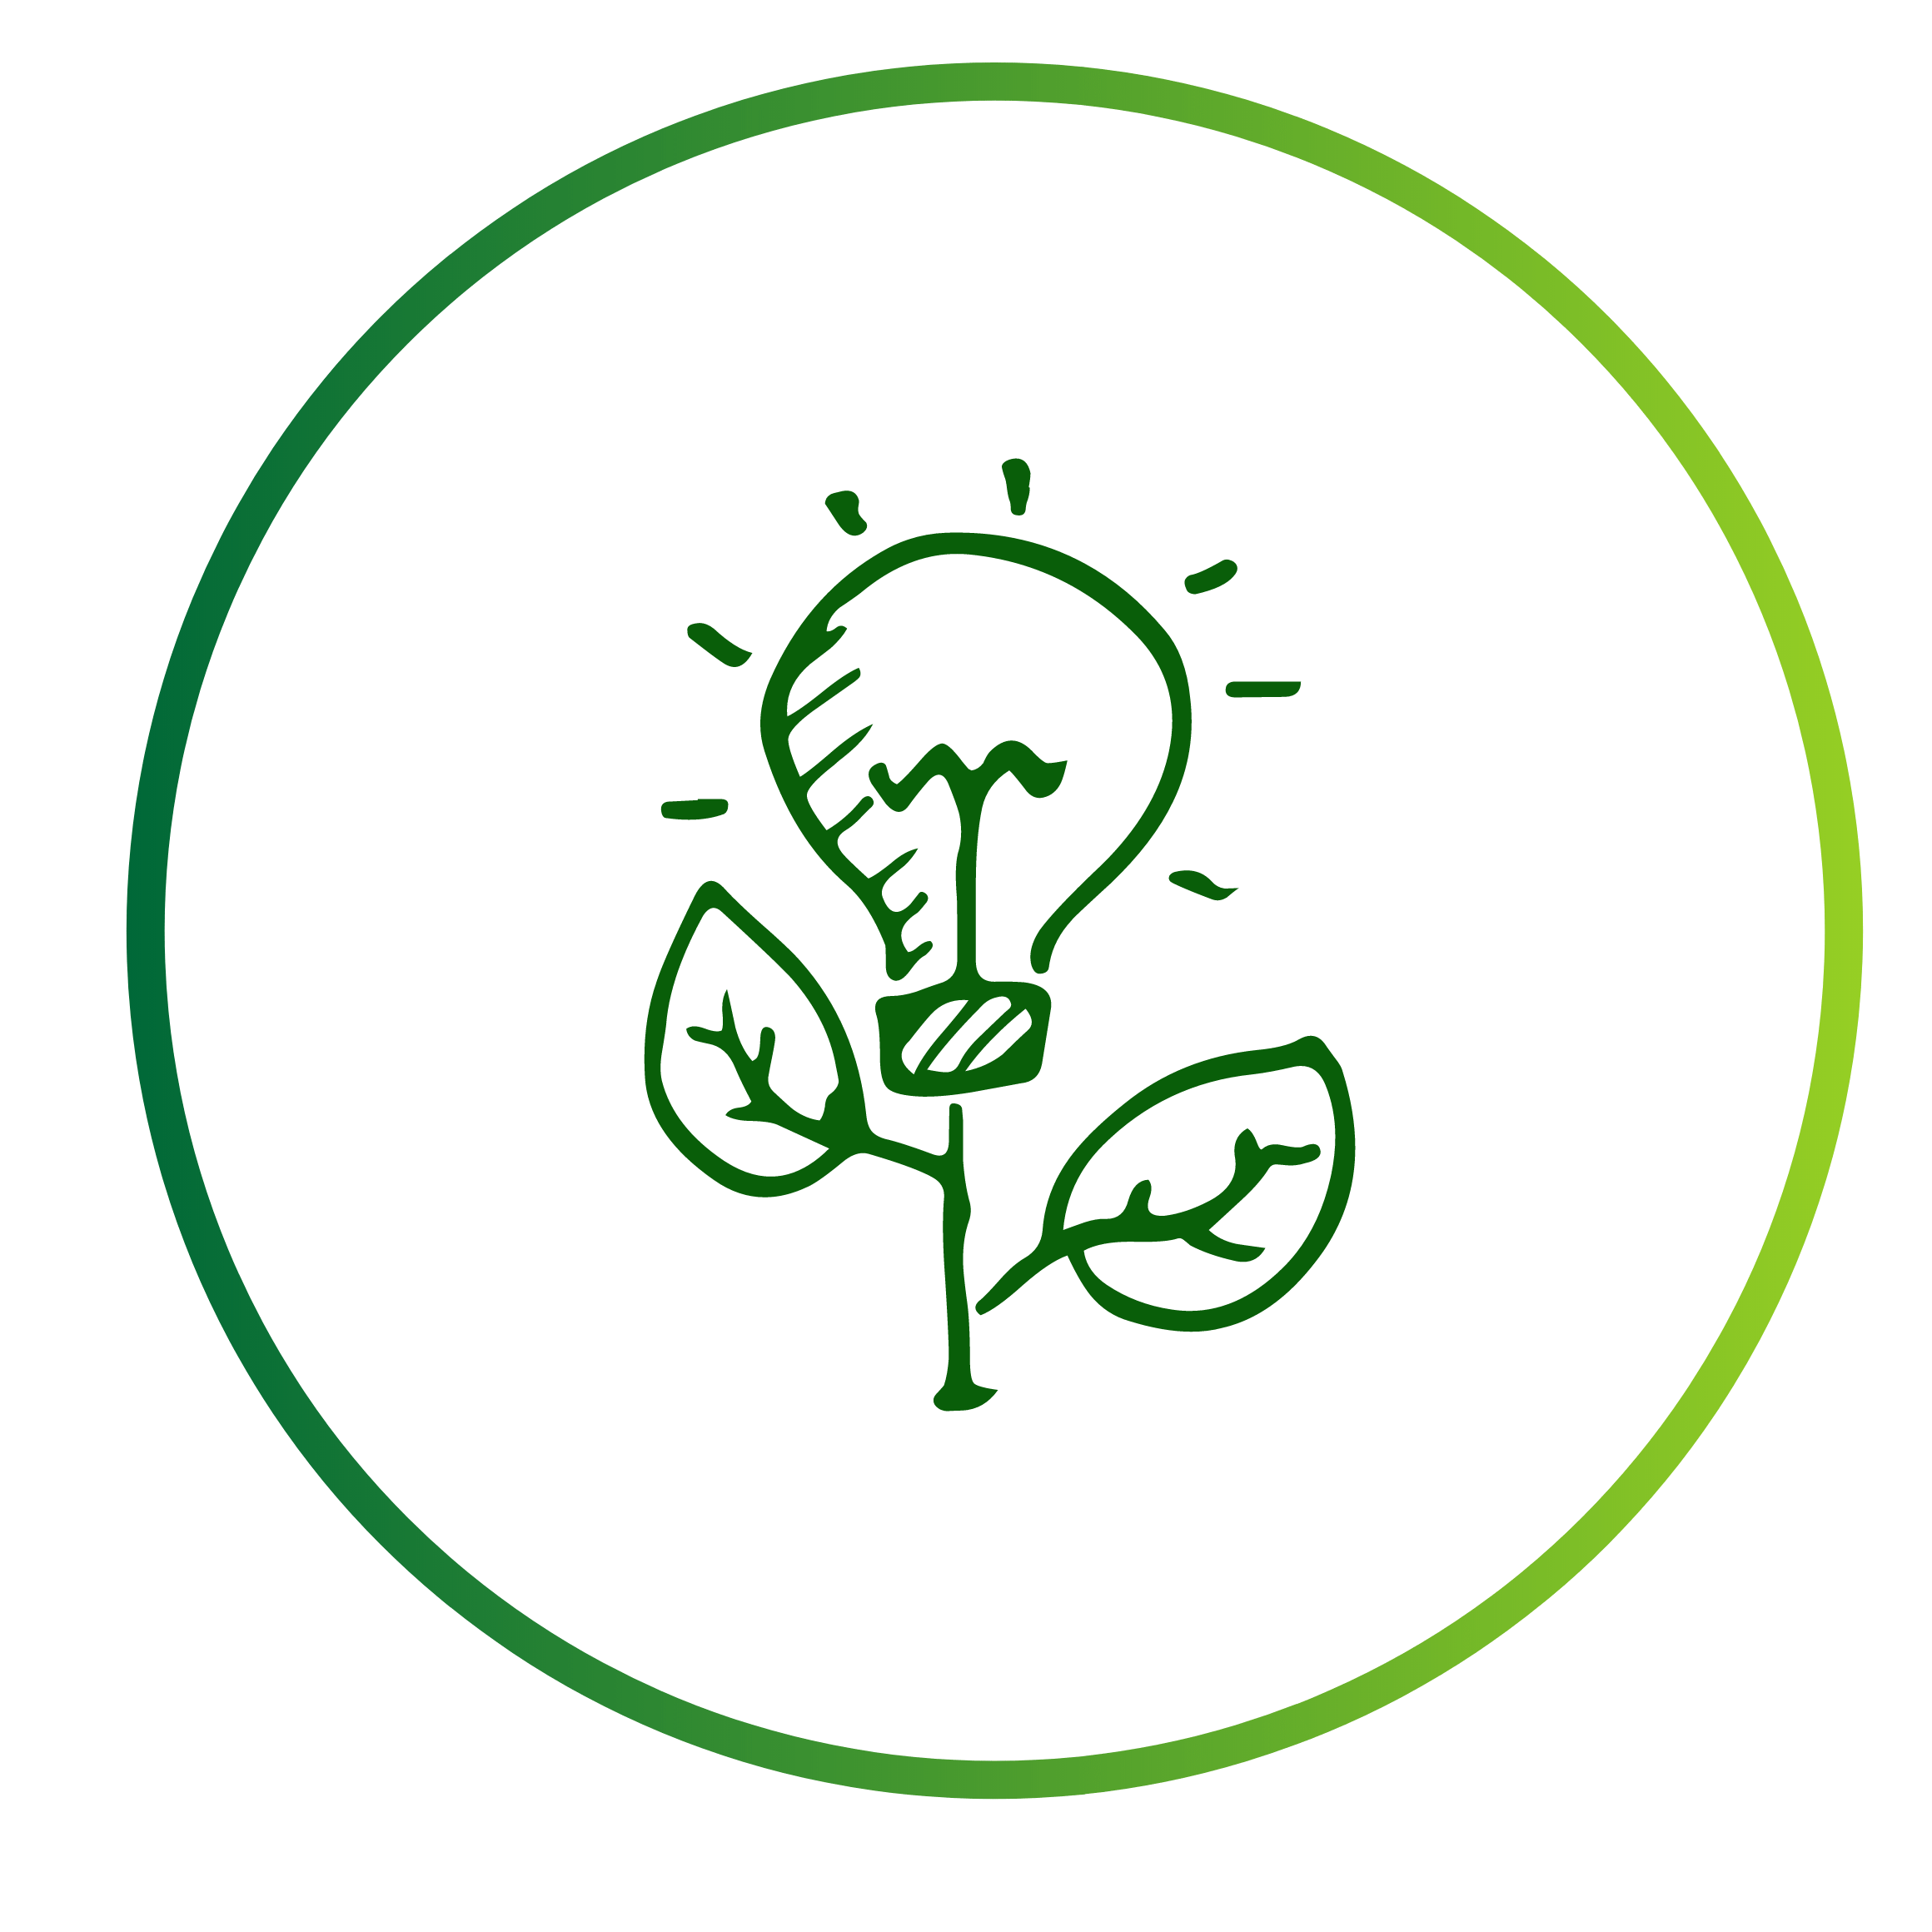 logo of plant growing with a lightbulb in place of flower